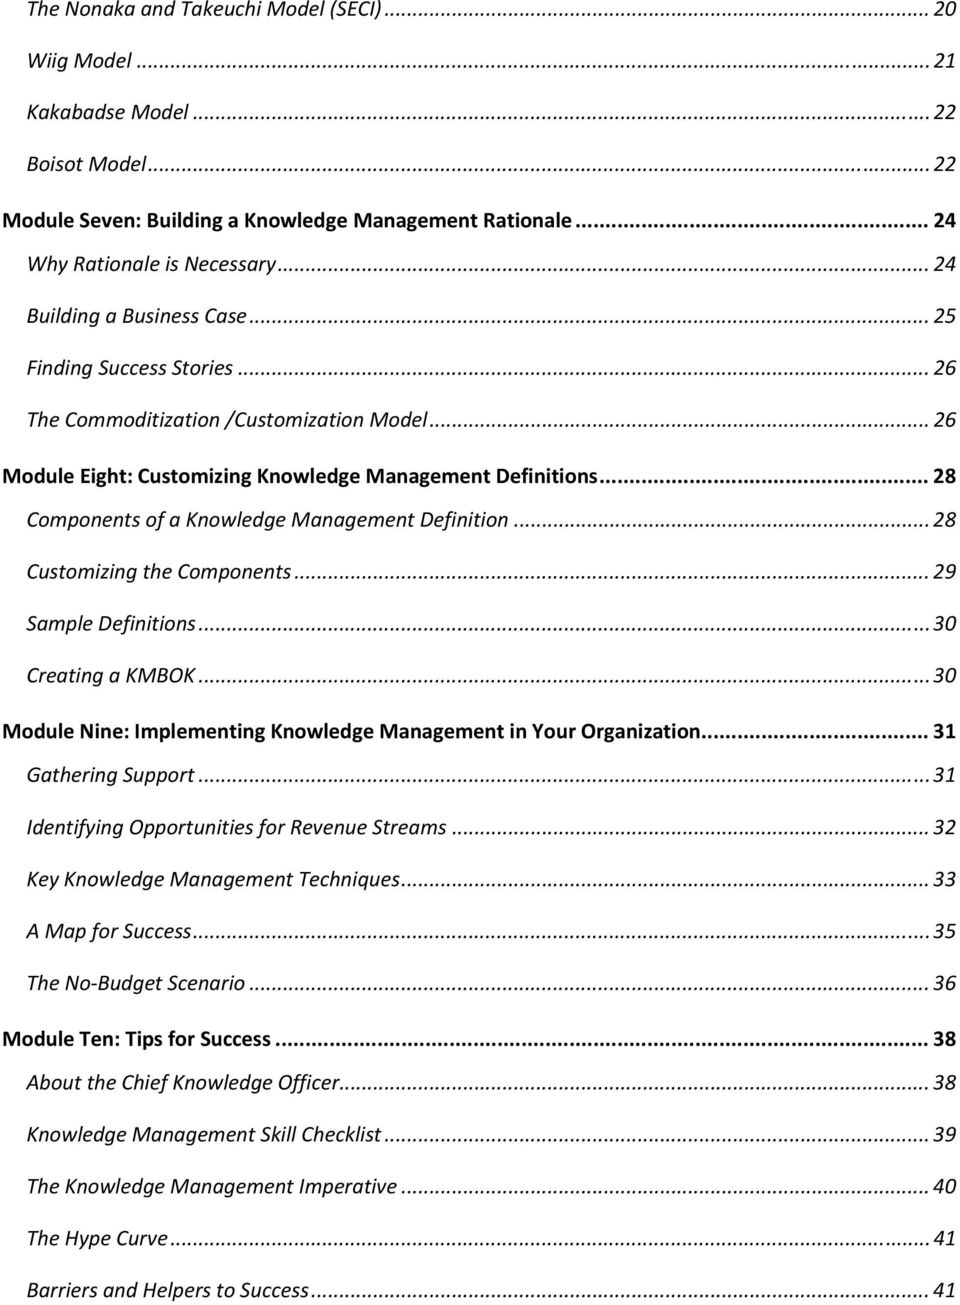 .. 28 Cmpnents f a Knwledge Management Definitin... 28 Custmizing the Cmpnents... 29 Sample Definitins... 30 Creating a KMBOK... 30 Mdule Nine: Implementing Knwledge Management in Yur Organizatin.